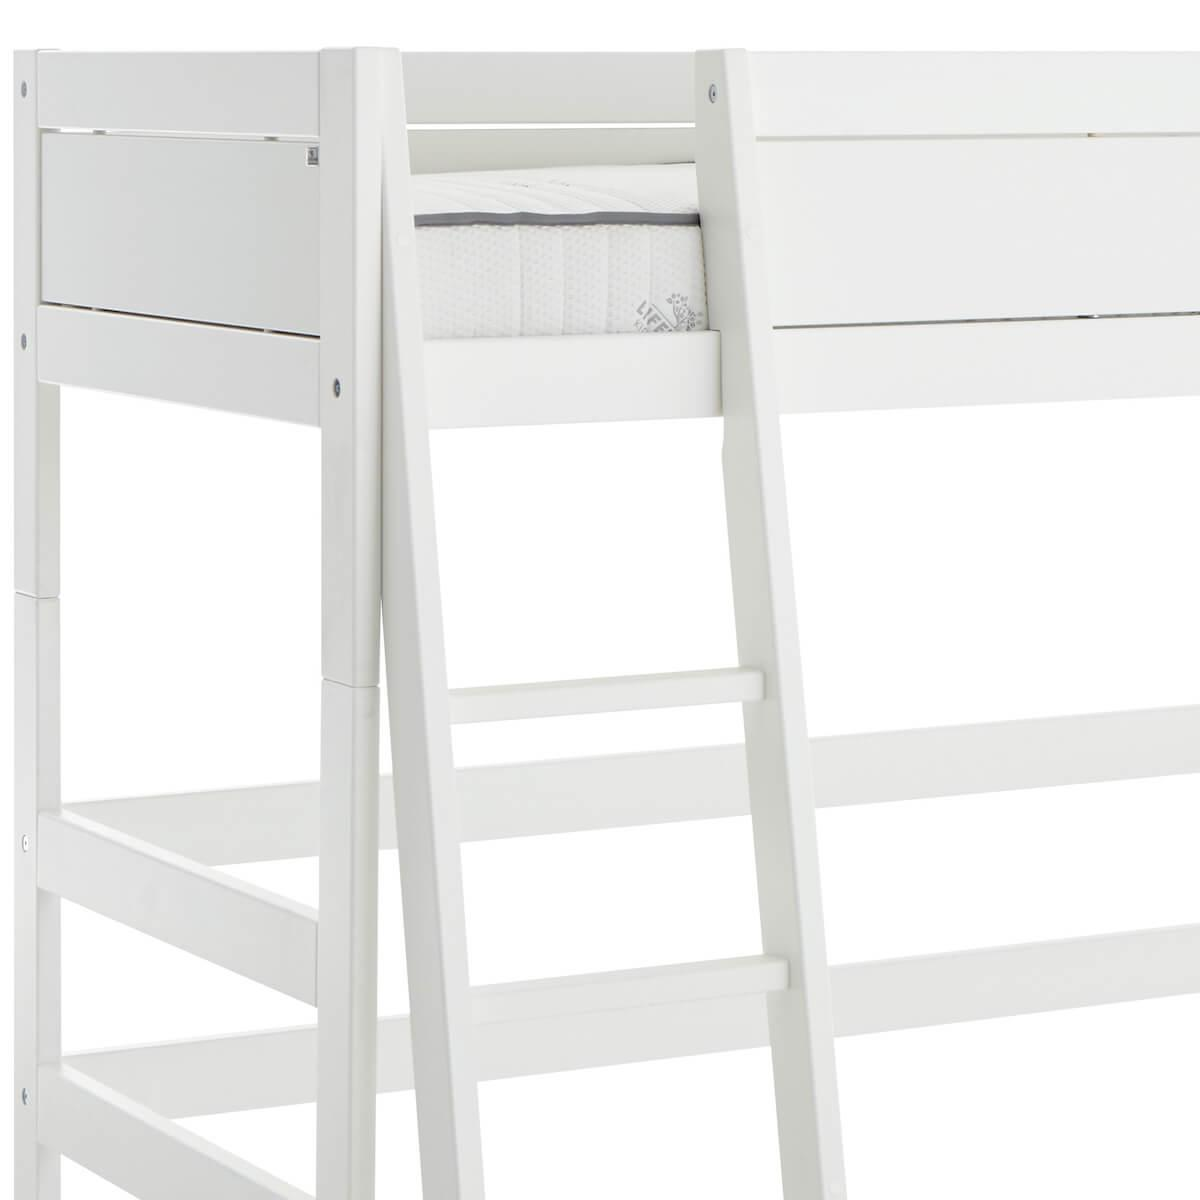 Cama semi alta 90x200cm escalera inclinada Lifetime blanco